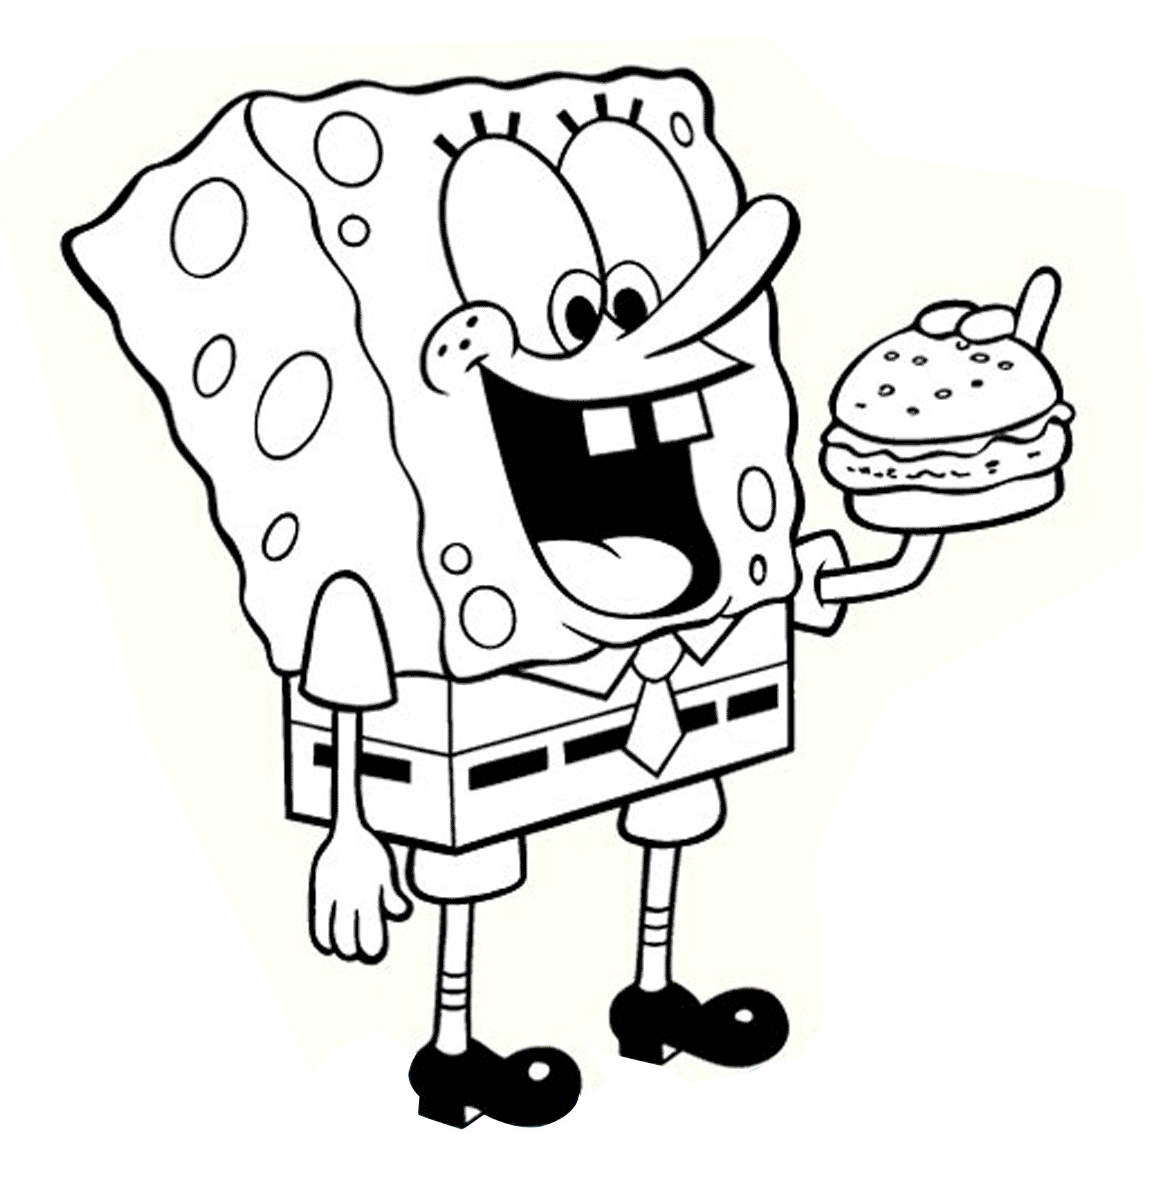 spongebob coloring pages to print spongebob coloring pages free printable download - Coloring Pictures Free